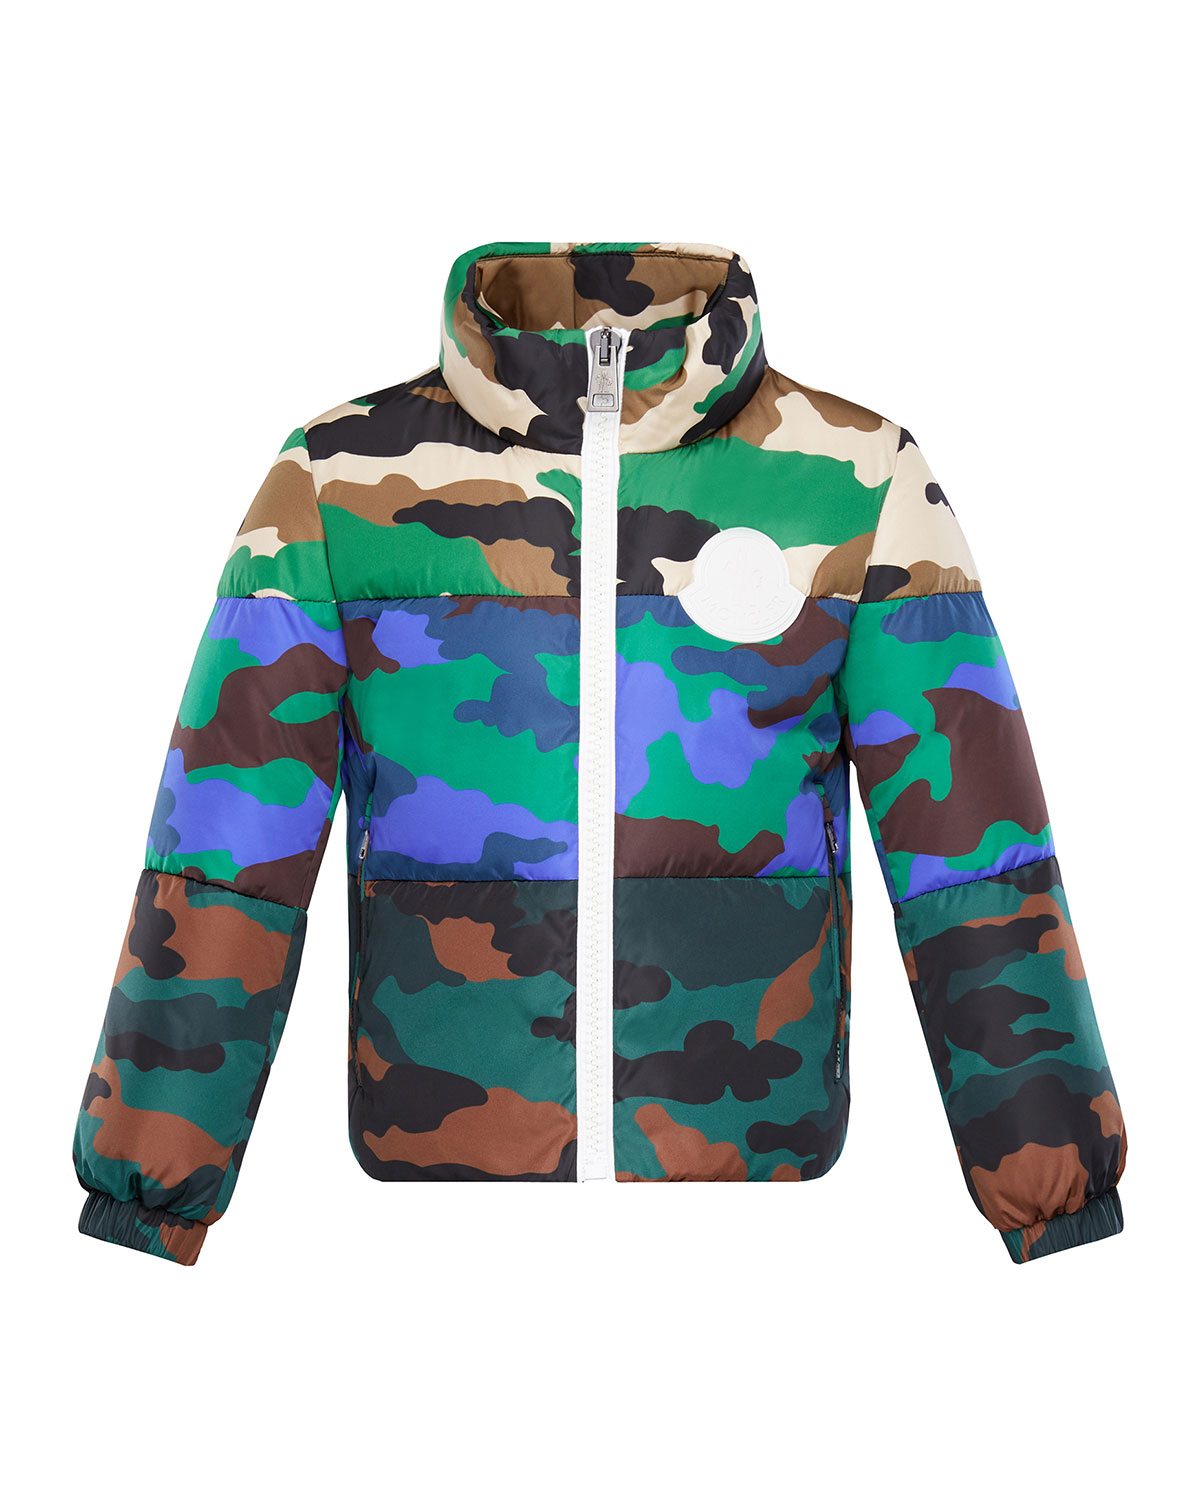 Moncler Kids' Marchaud Camo Water Resistant Down Insulated Jacket In Green